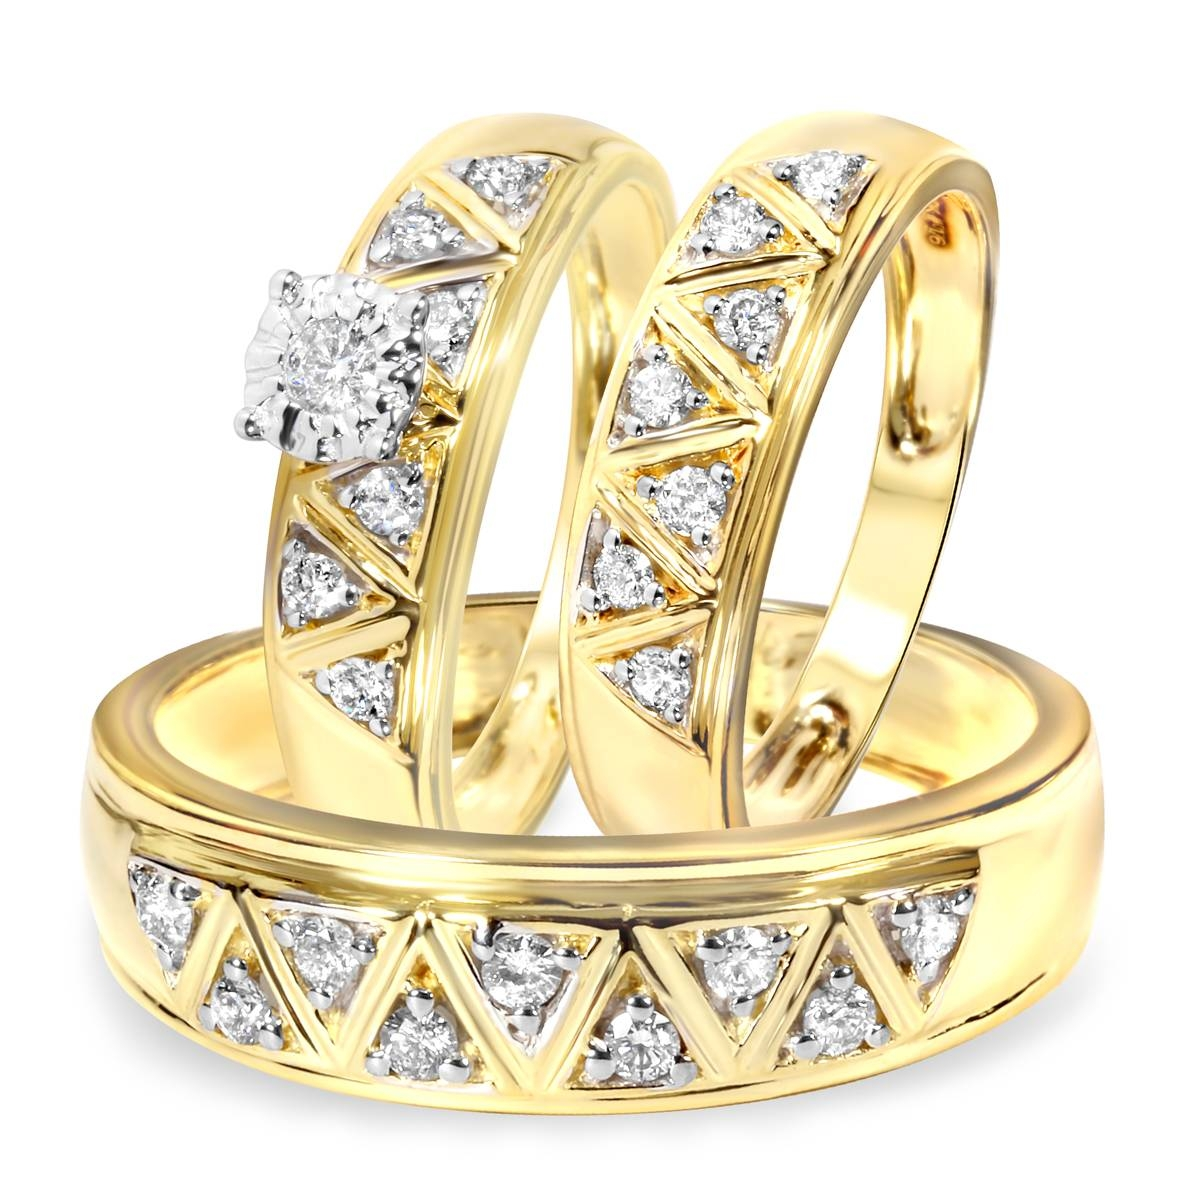 1/2 Carat Diamond Trio Wedding Ring Set 14K Yellow Gold Within Trio Engagement Ring Sets (View 3 of 15)